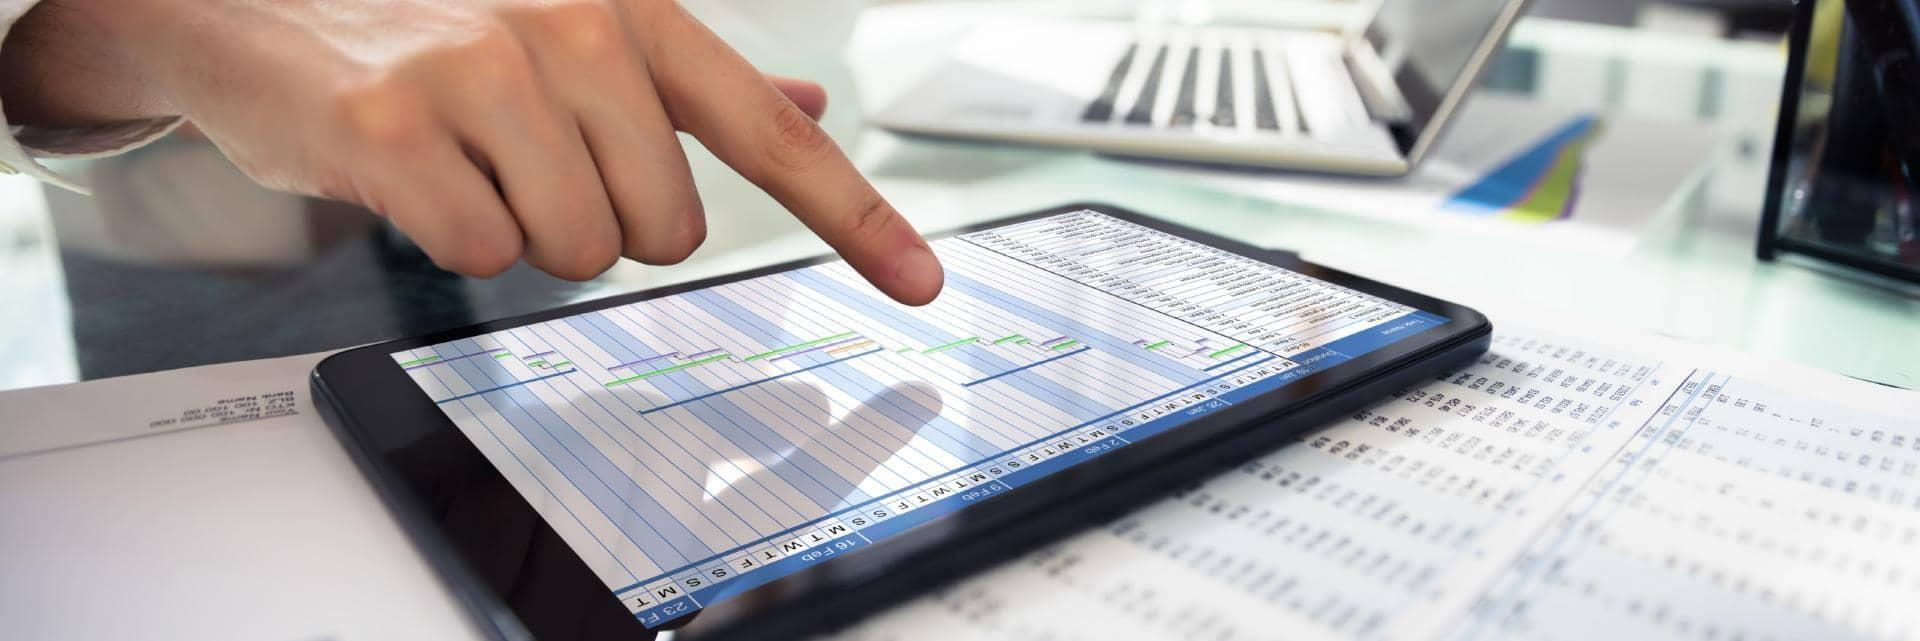 vPhrase success story